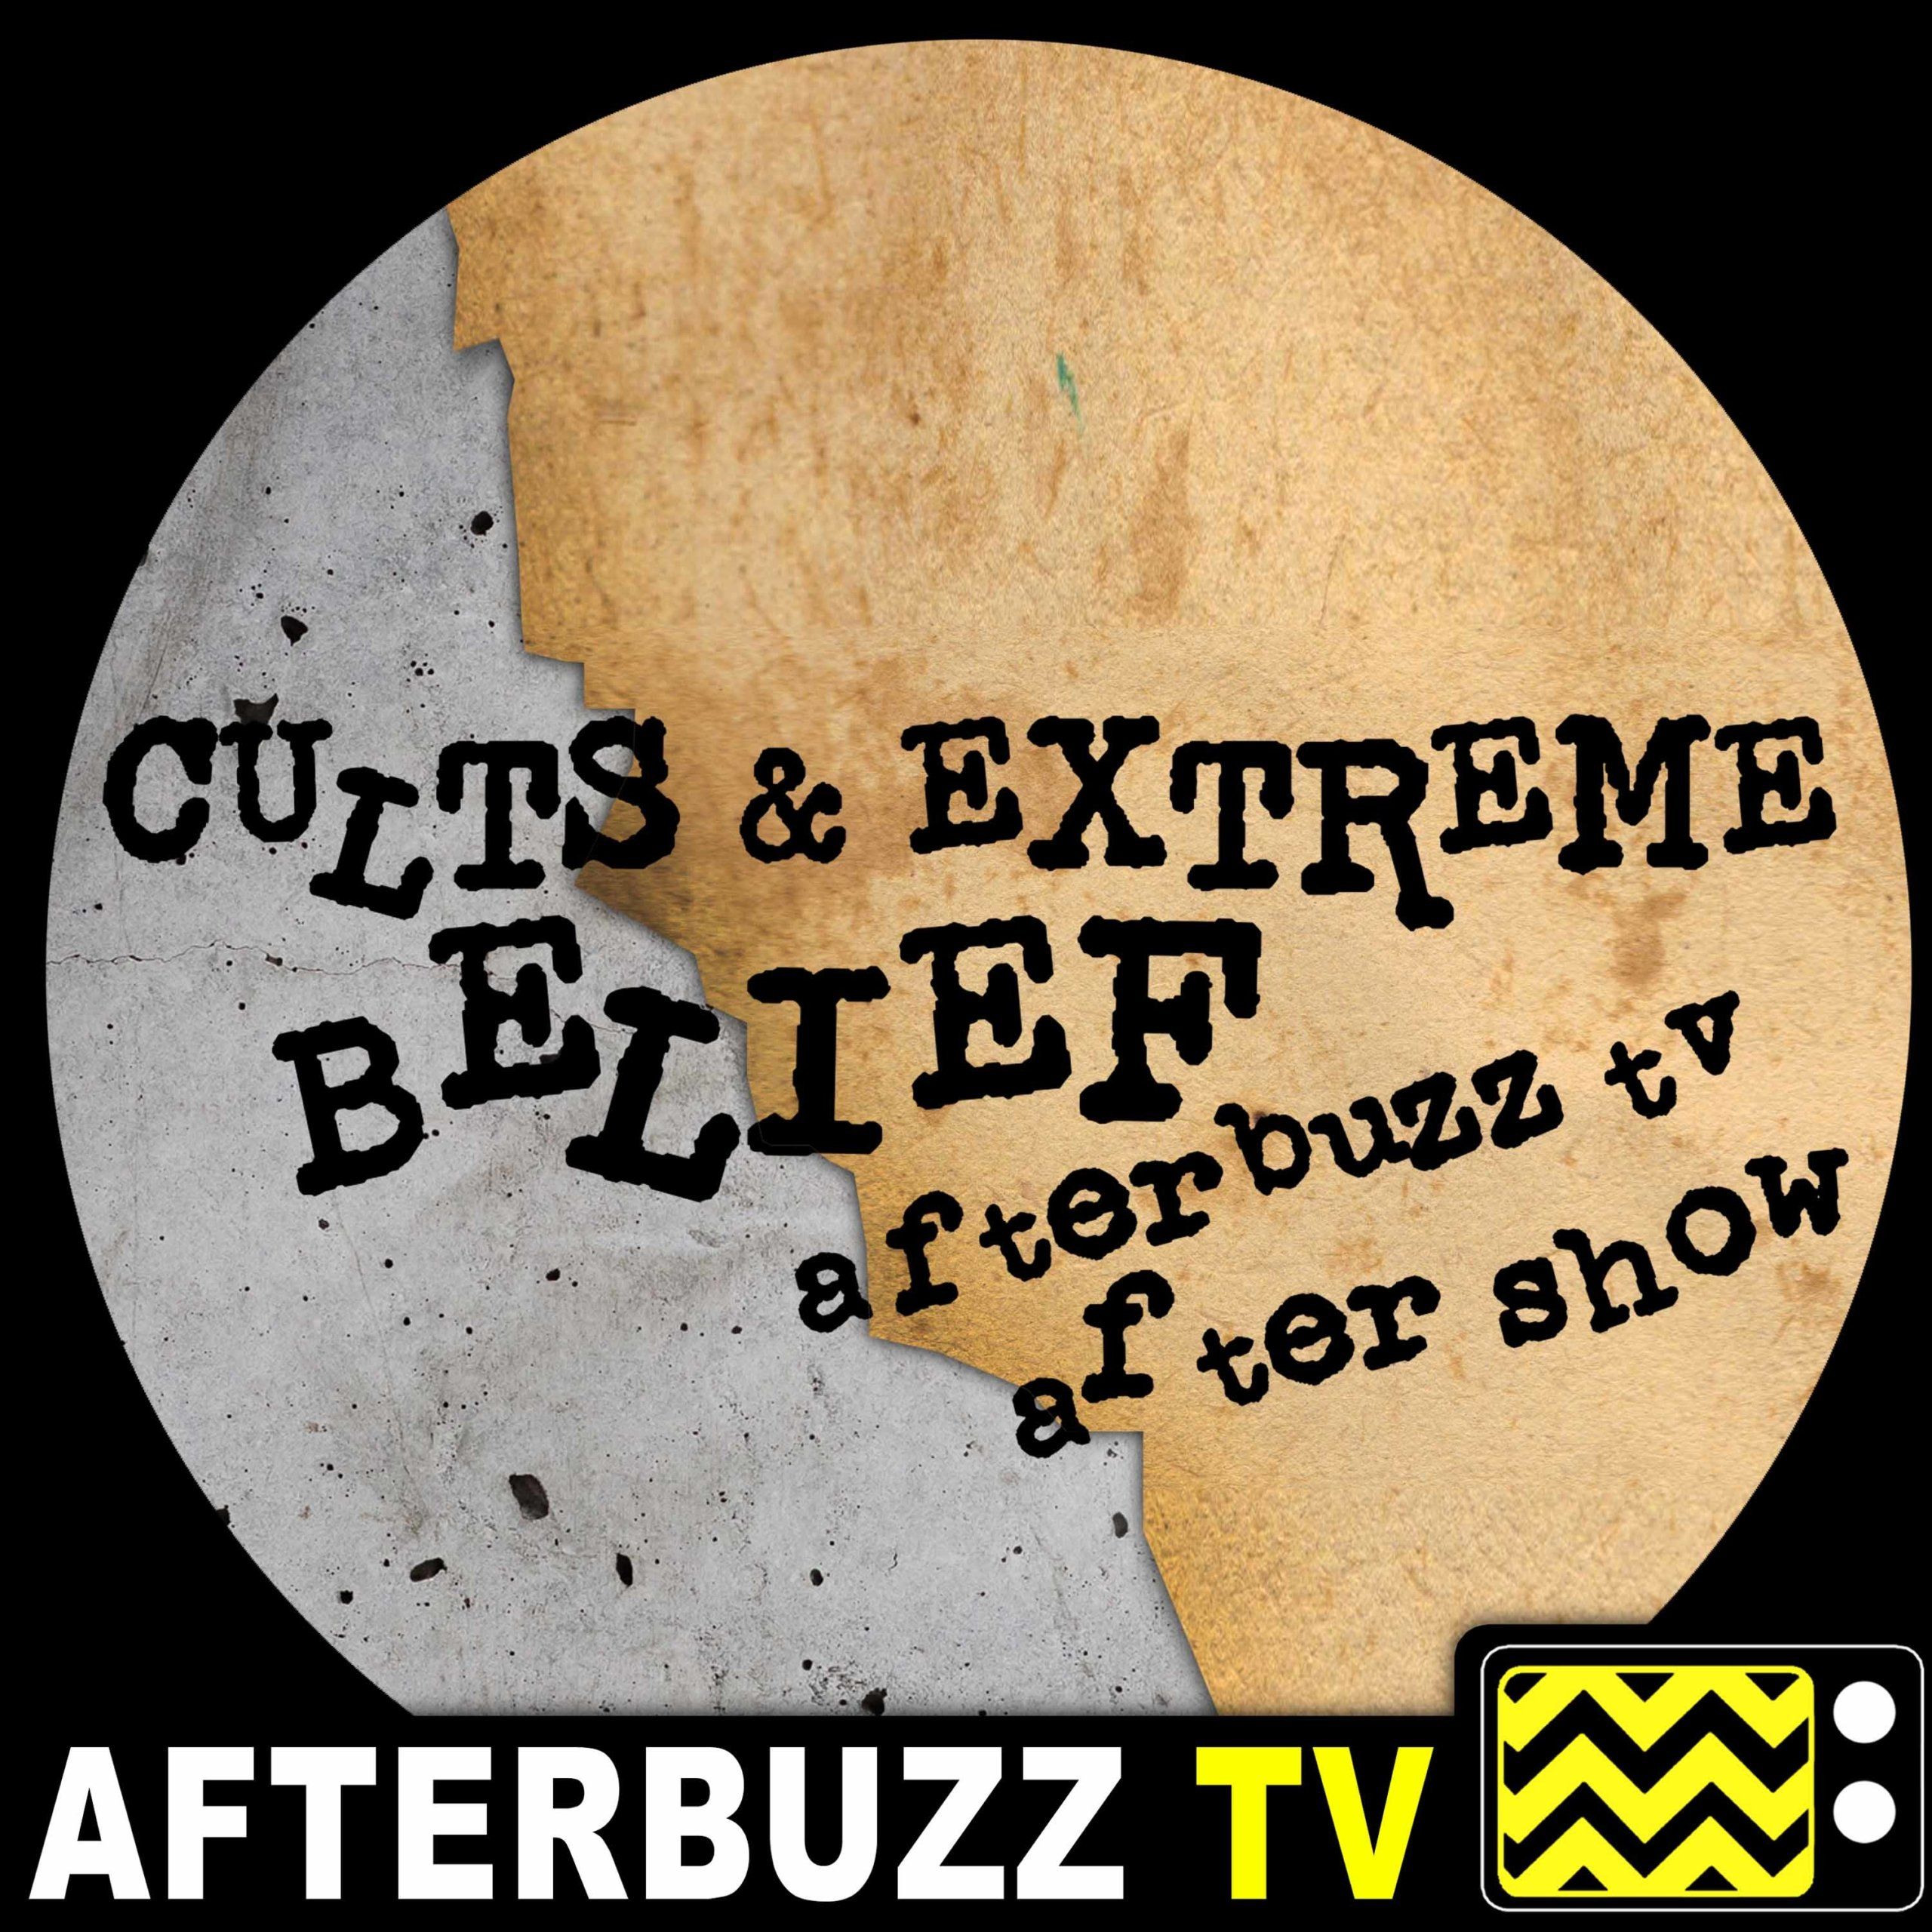 Cults and Extreme Belief S:1 | The Survivors Talk Pt. 2 E:9 | AfterBuzz TV AfterShow